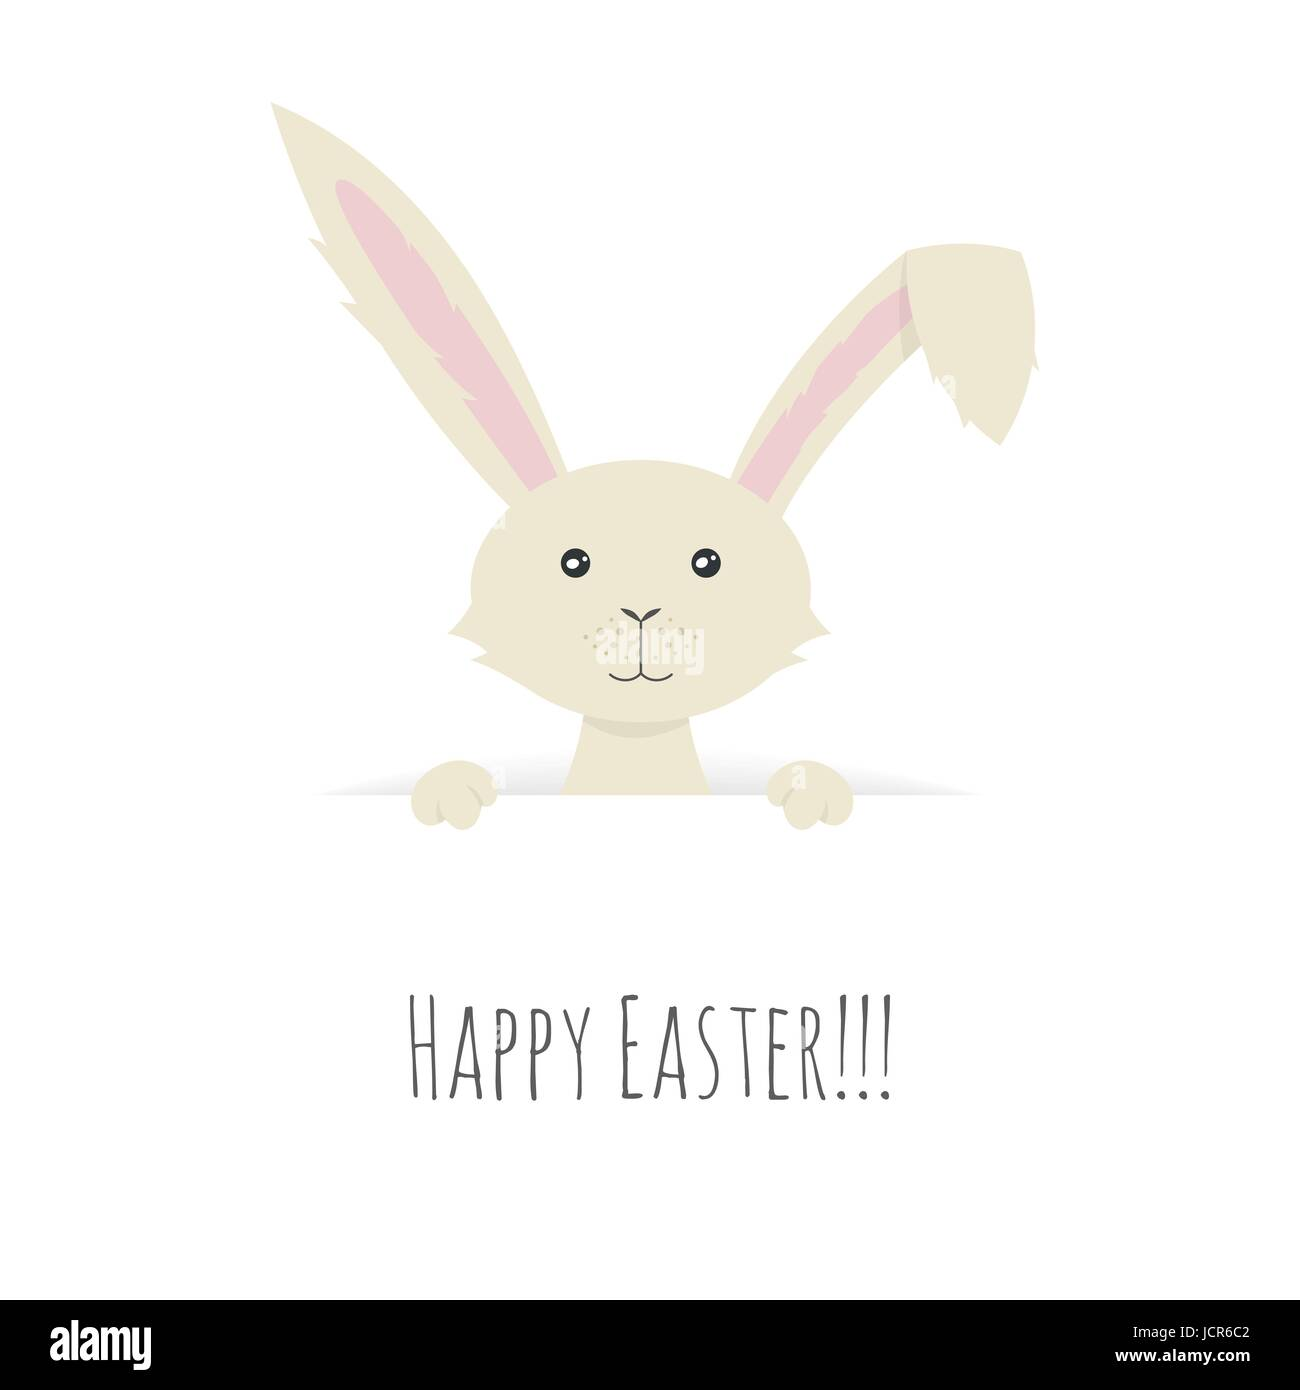 Vector illustration of Cute Easter Bunny peeping over the top of a blank sign. - Stock Vector